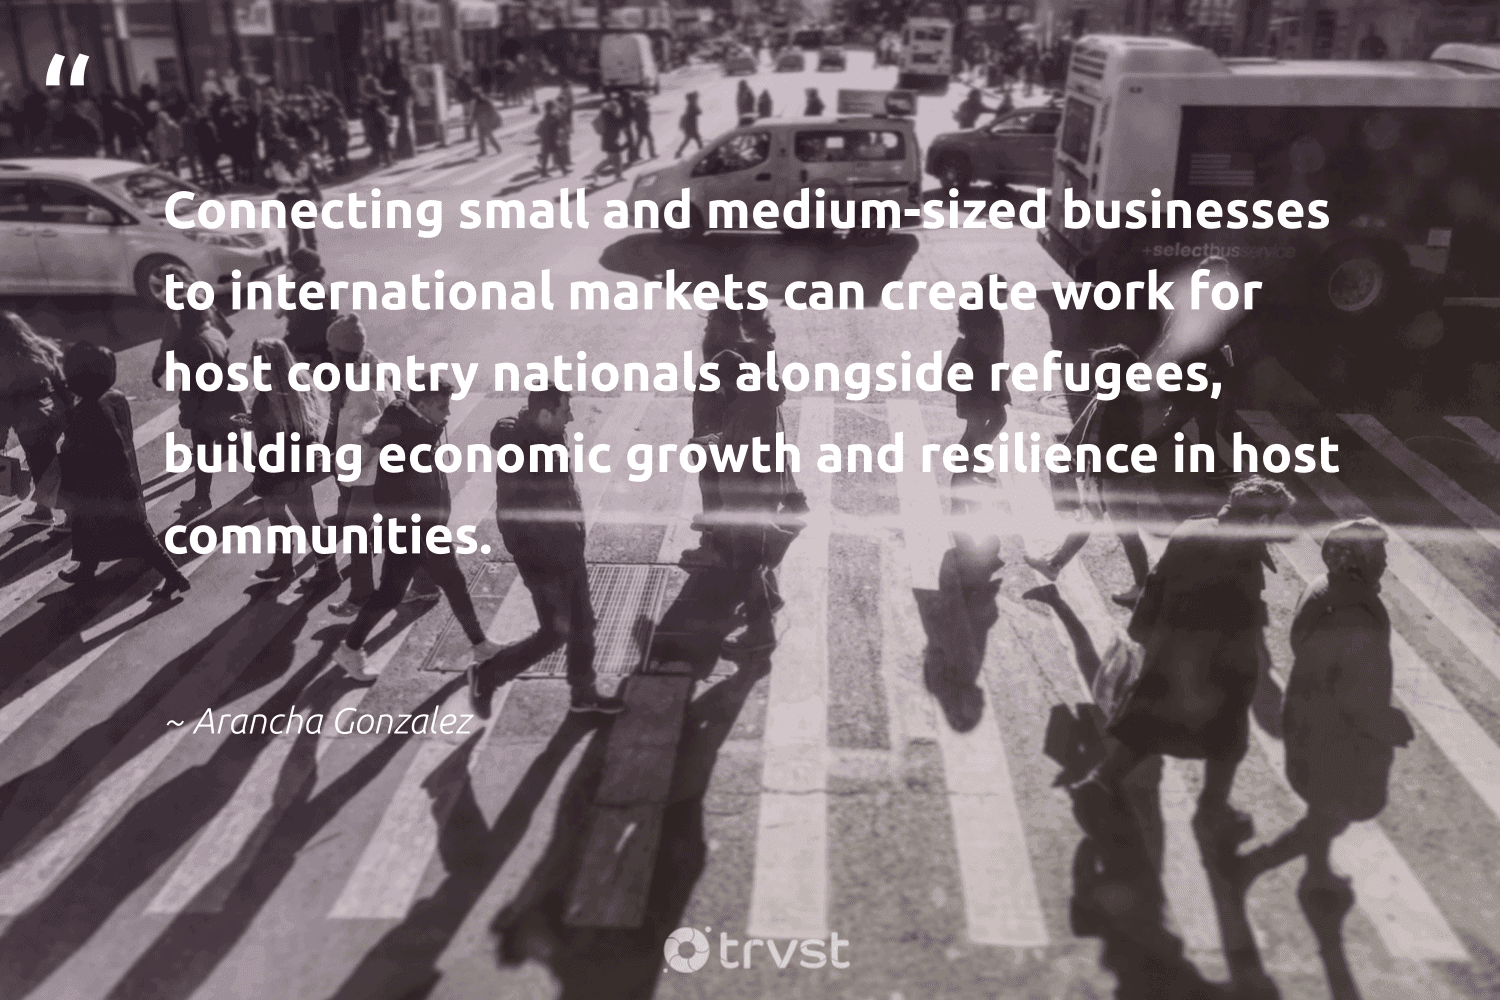 """""""Connecting small and medium-sized businesses to international markets can create work for host country nationals alongside refugees, building economic growth and resilience in host communities.""""  - Arancha Gonzalez #trvst #quotes #refugees #communities #refugee #weareallone #equalrights #socialchange #refugeeswelcome #sustainablefutures #makeadifference #impact"""